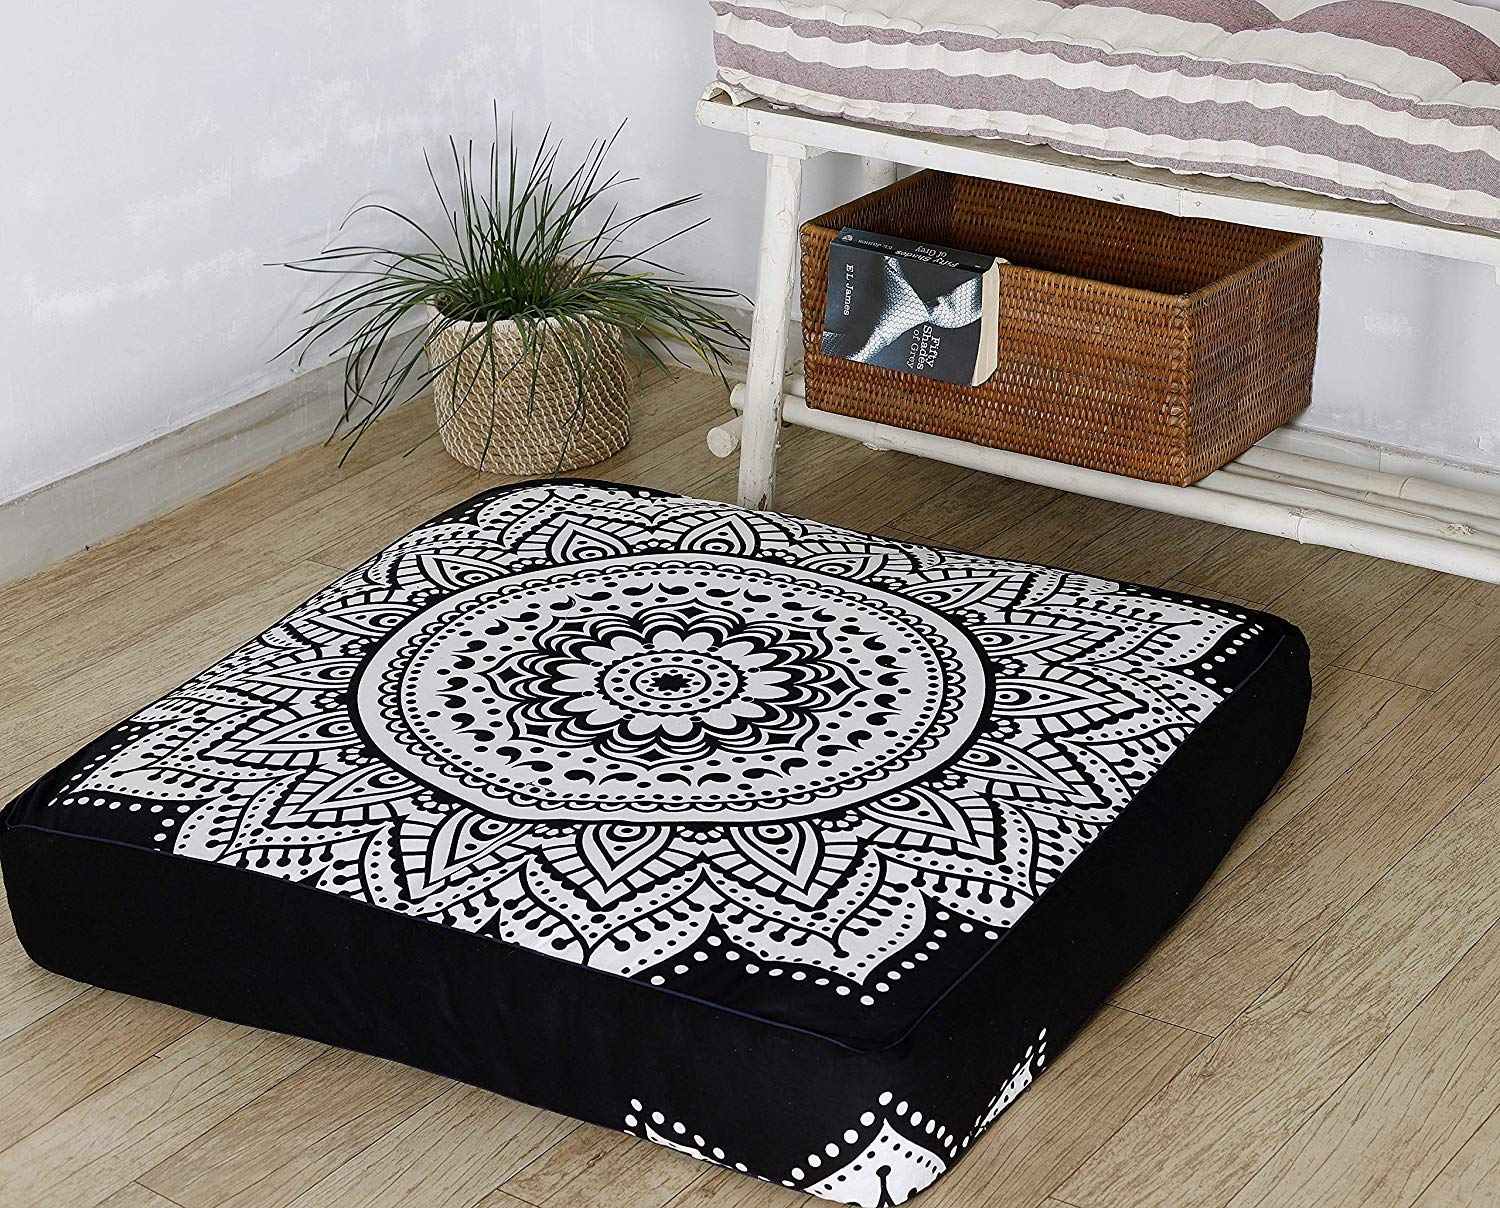 Indian Mandala Black & White Floor Pillow Cover Square Ottoman Pouf Cover Daybed Oversized Cotton Cushion Cover with Heavy Duty Zipper Seating Ottoman Poufs Dog-Pets Bed 35'' by Hemsi-77